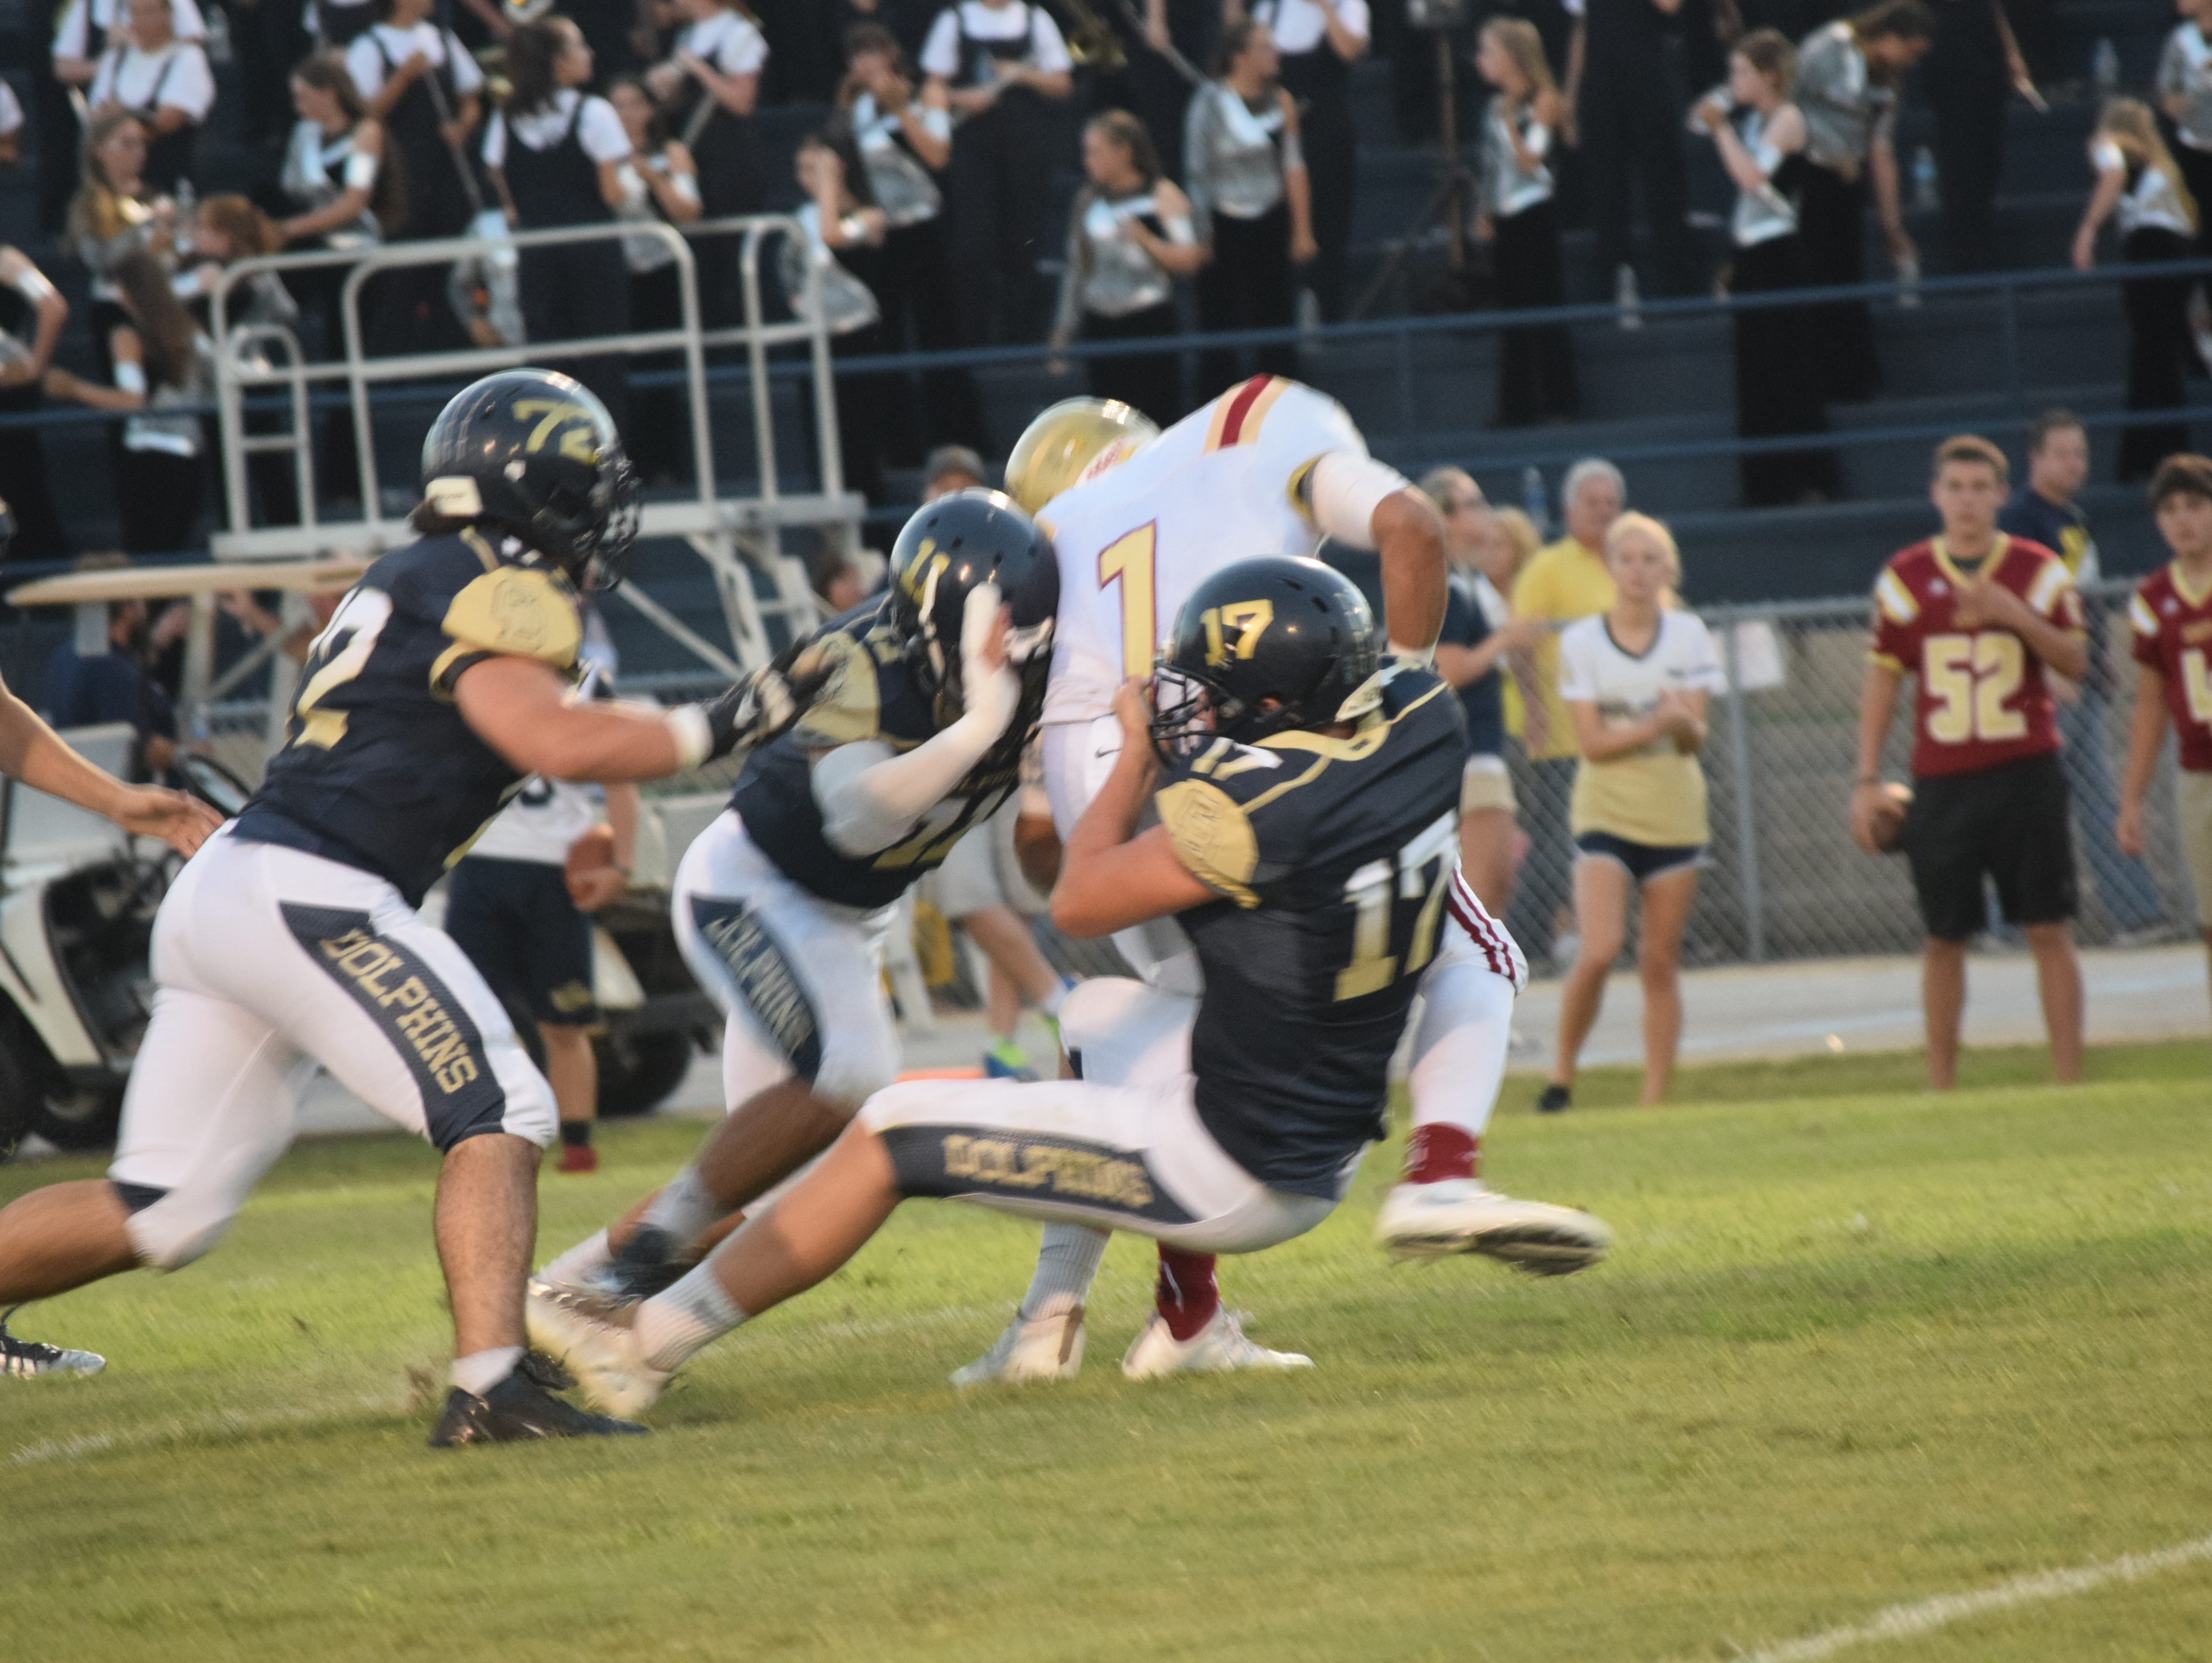 Gulf Breeze linebacker Will Sawarynski brings down Northview quarterback Luke Ward as Ben Dobry (11) and Liam Gesler (72) close in during first quarter of Friday night's game at Gulf Breeze.